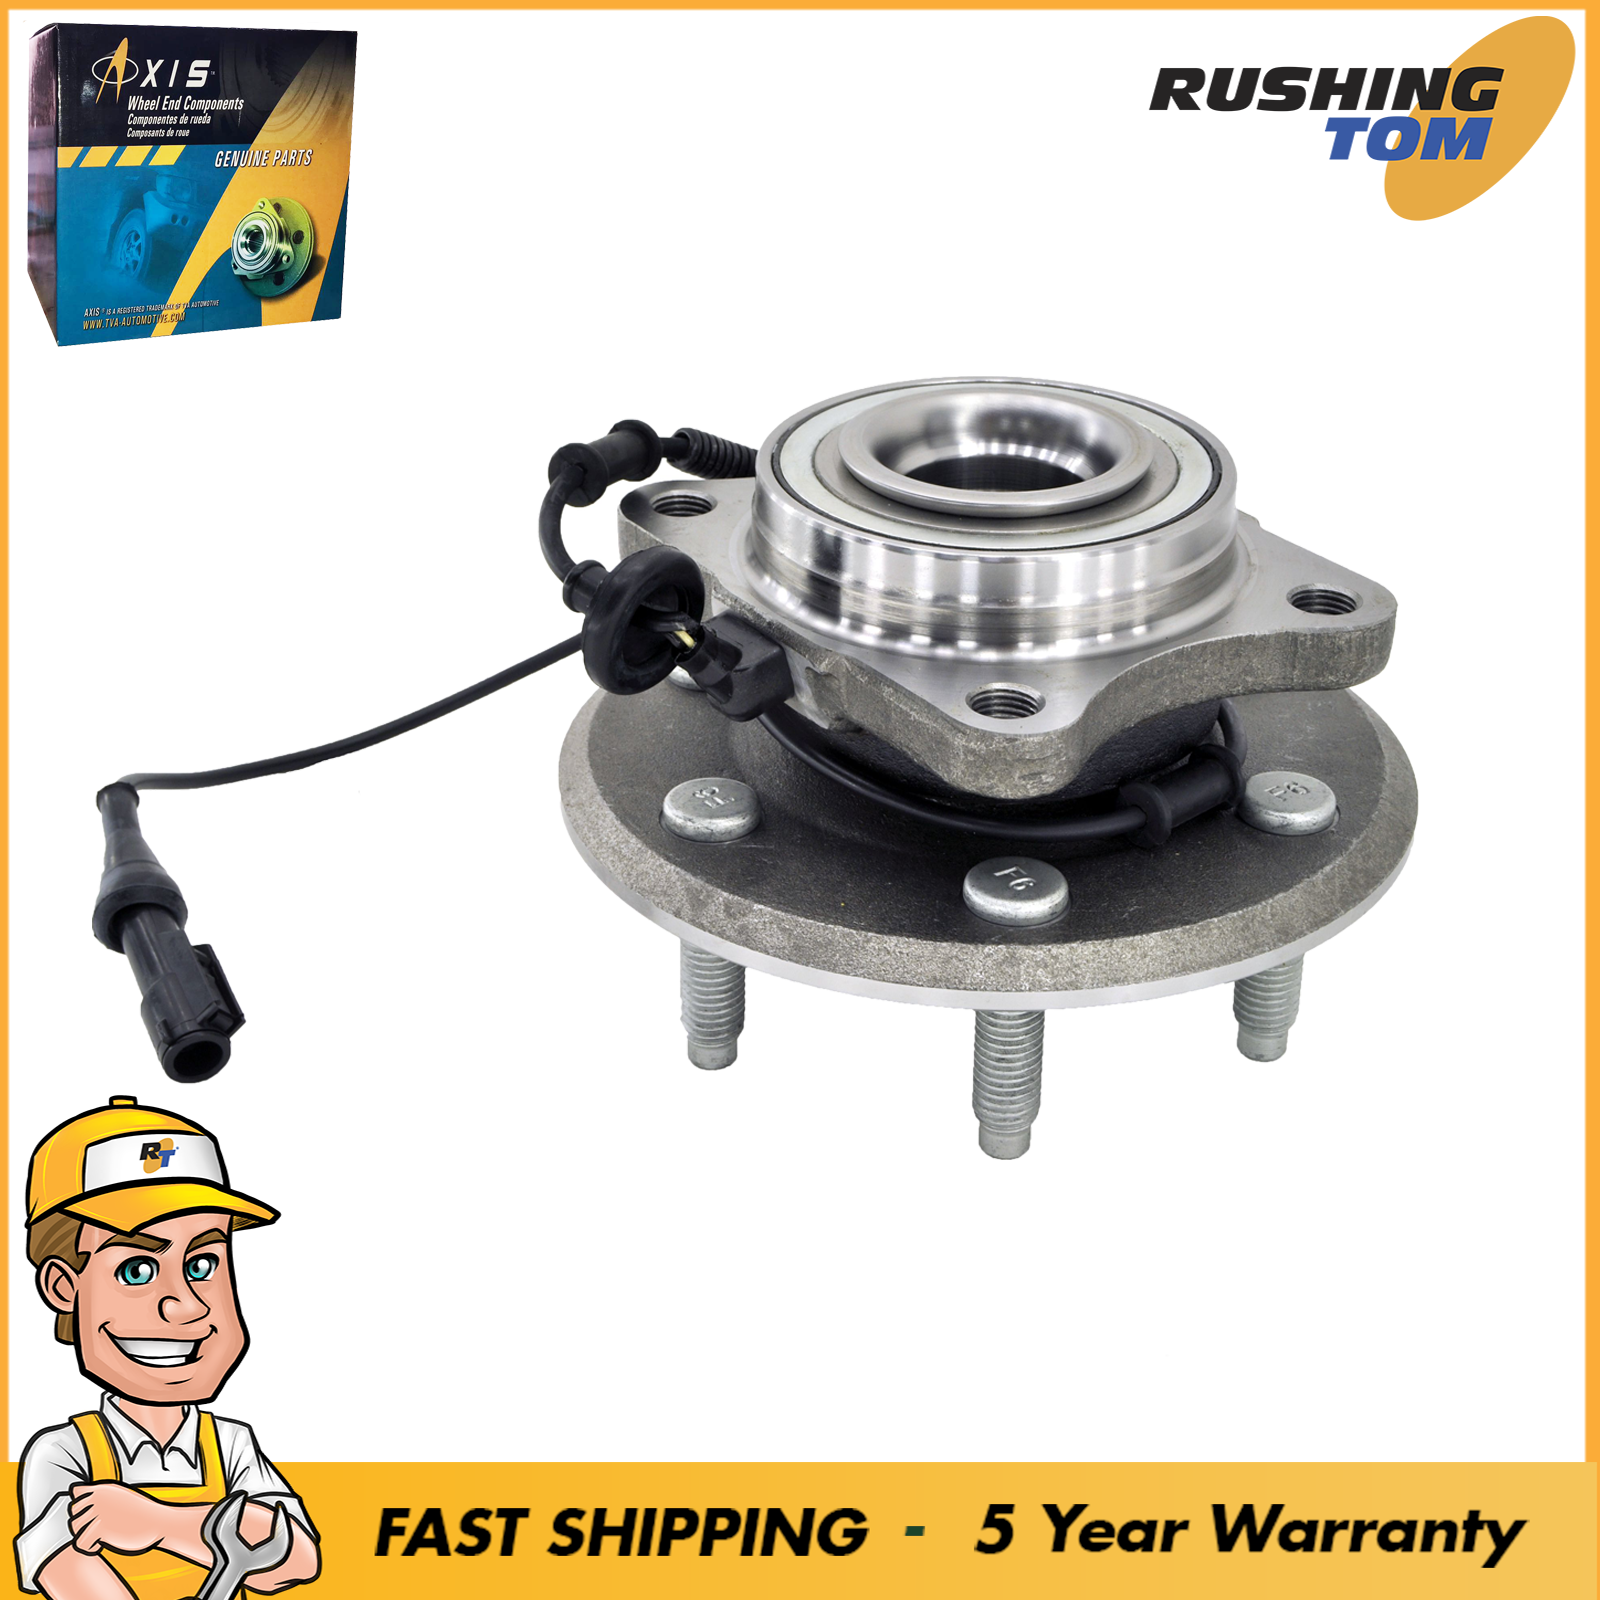 Axis Wheel Hub and Bearing Assembly Rear Driver / Passenger With 5 Year Warranty